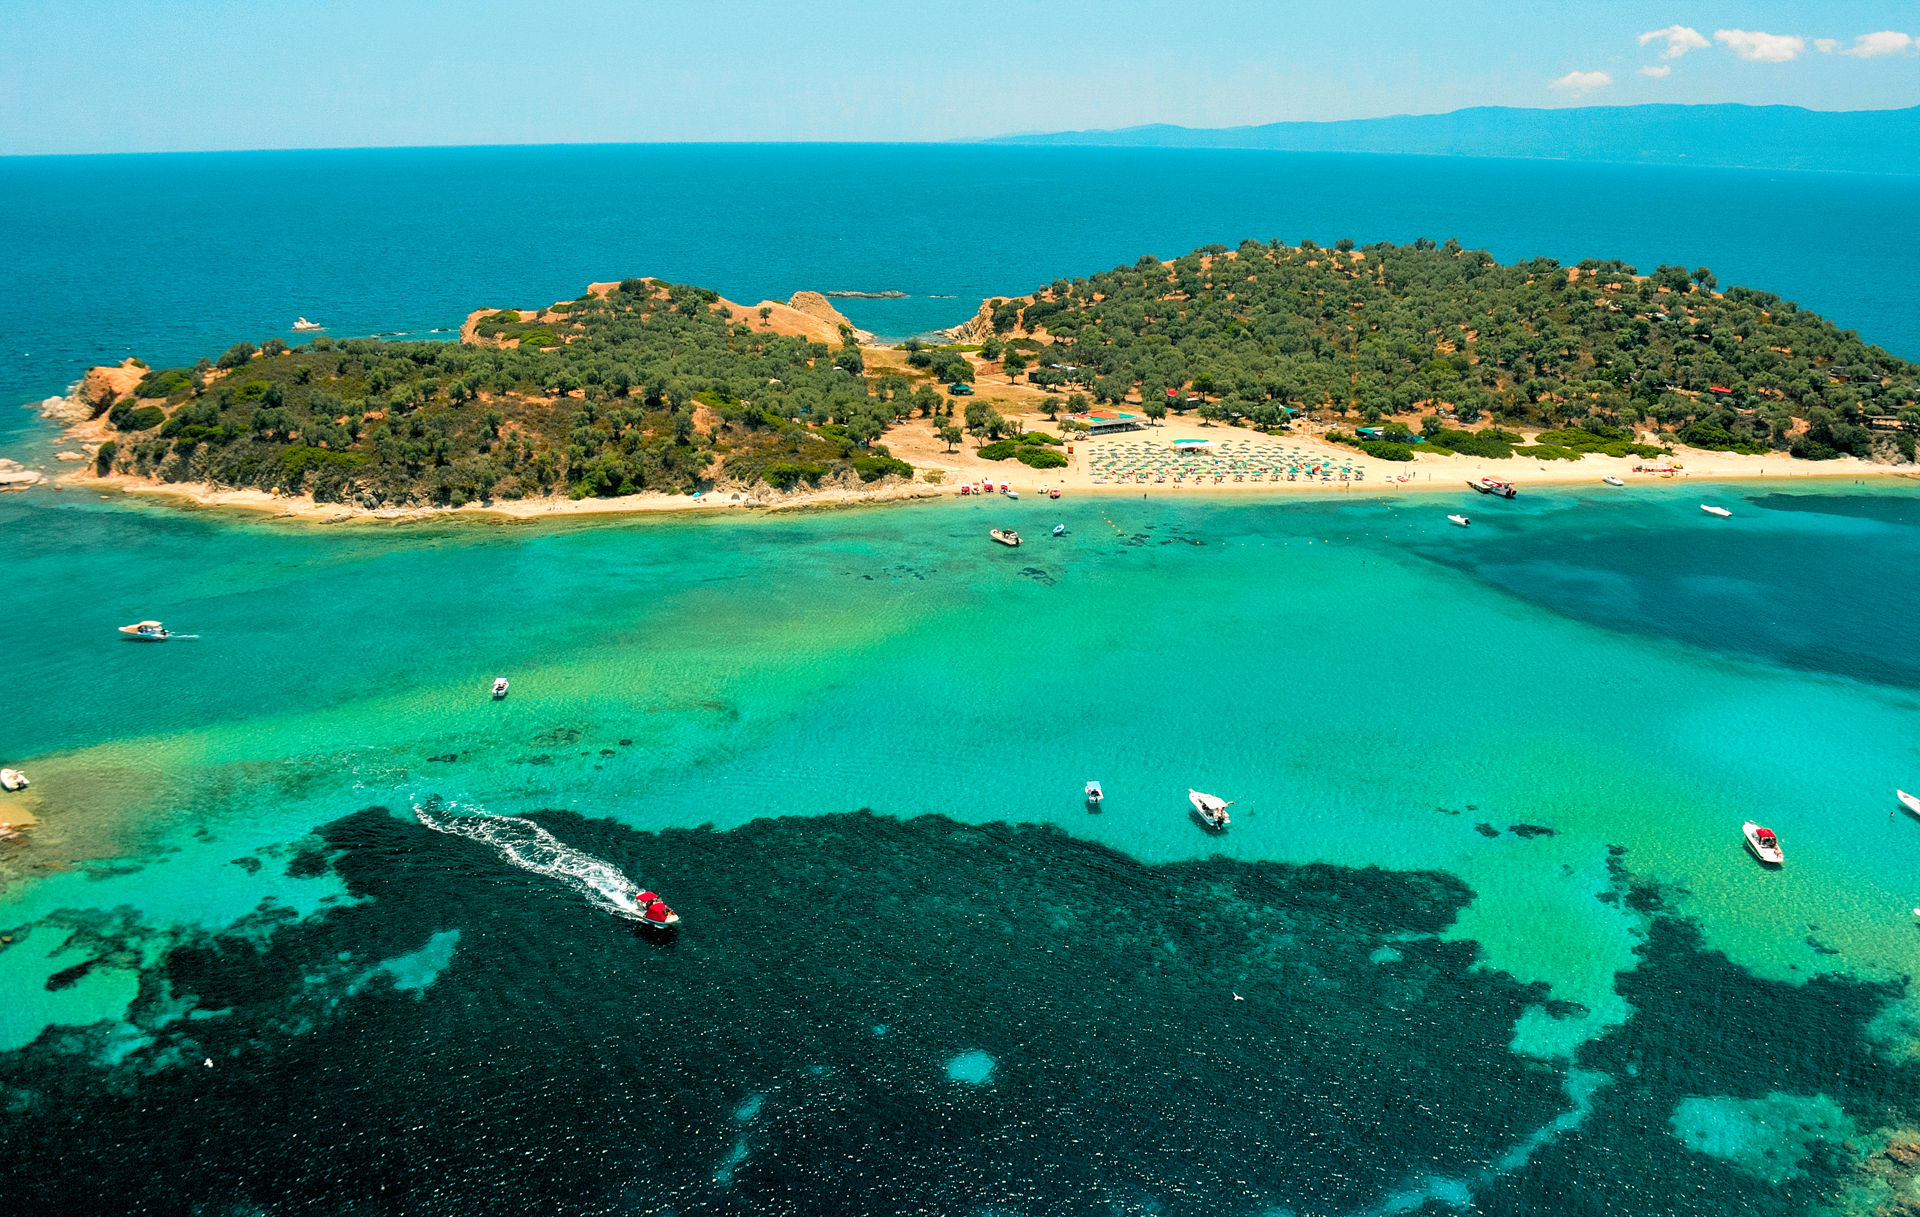 Halkidiki drone photography